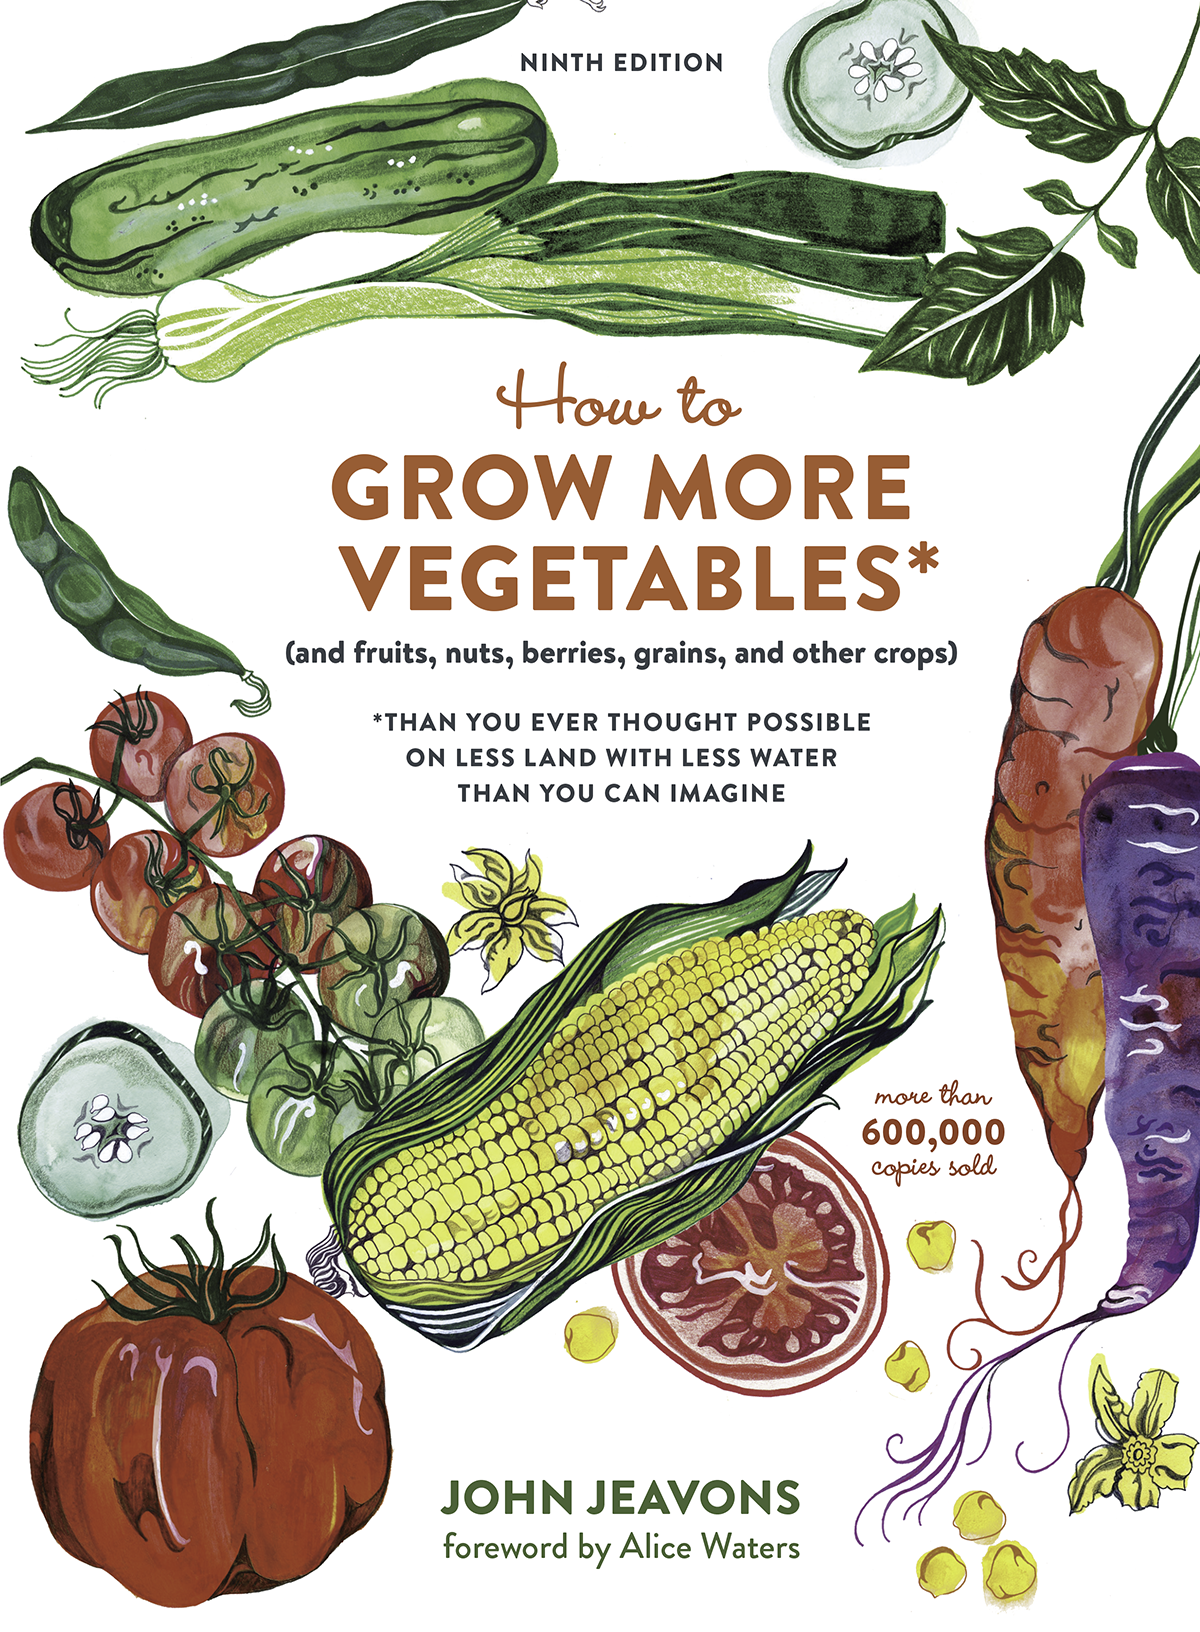 HTGMV - How To Grow More Vegetables is the worlds leading resource on Biointensive, sustainable, high-yield organic gardening.This book contains all you need to grow all of your own food, using The GROW BIOINTENSIVE Method of mini-farming.It also contains the